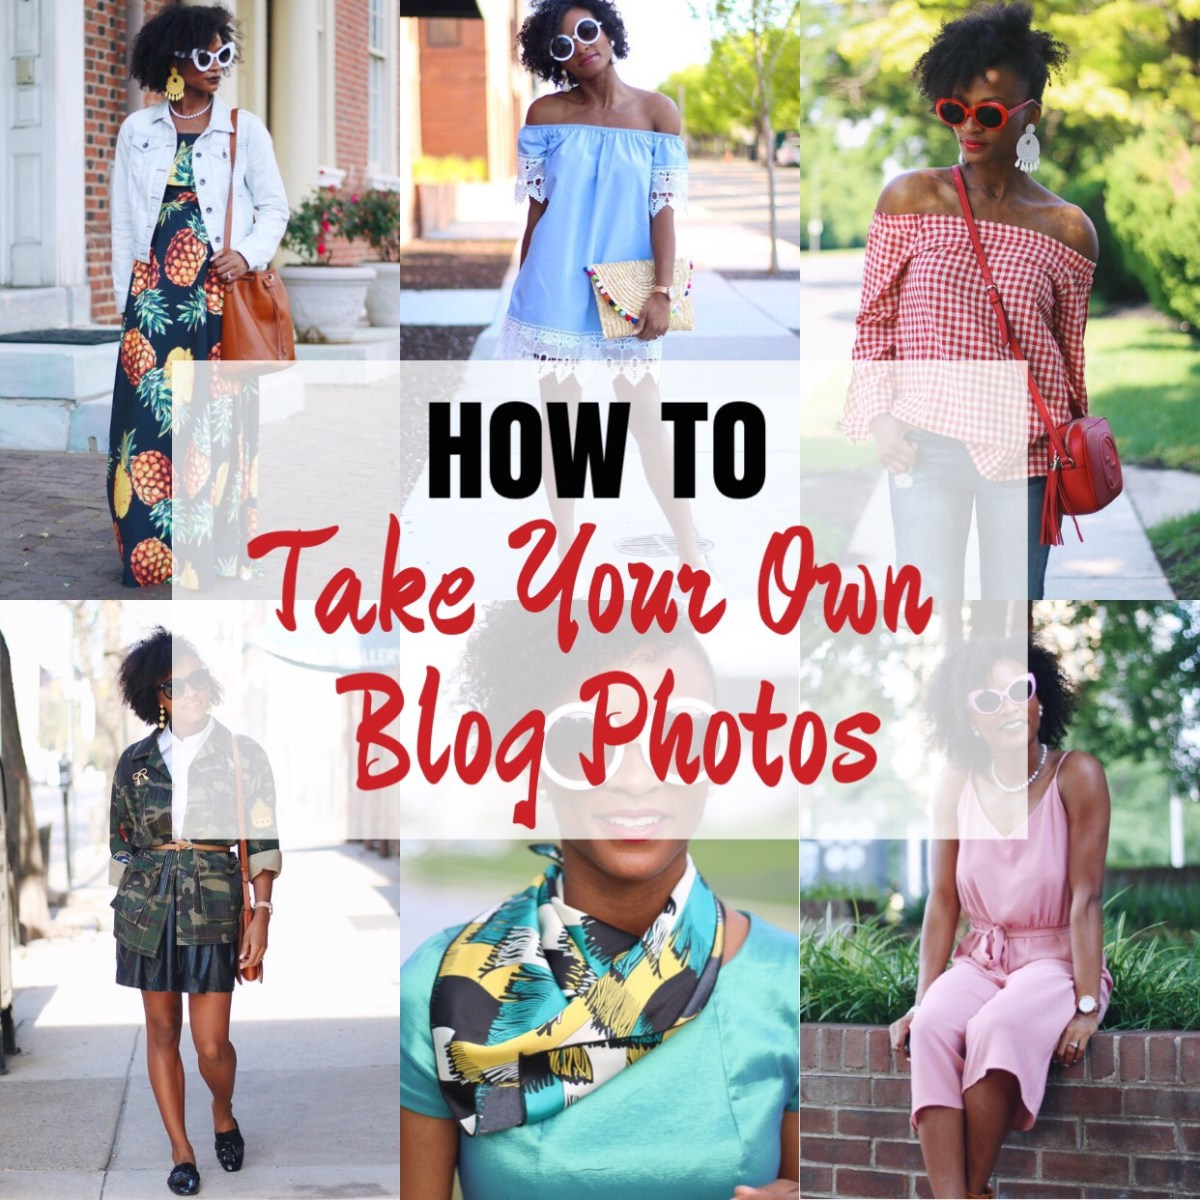 Take Your Own Blog Photos